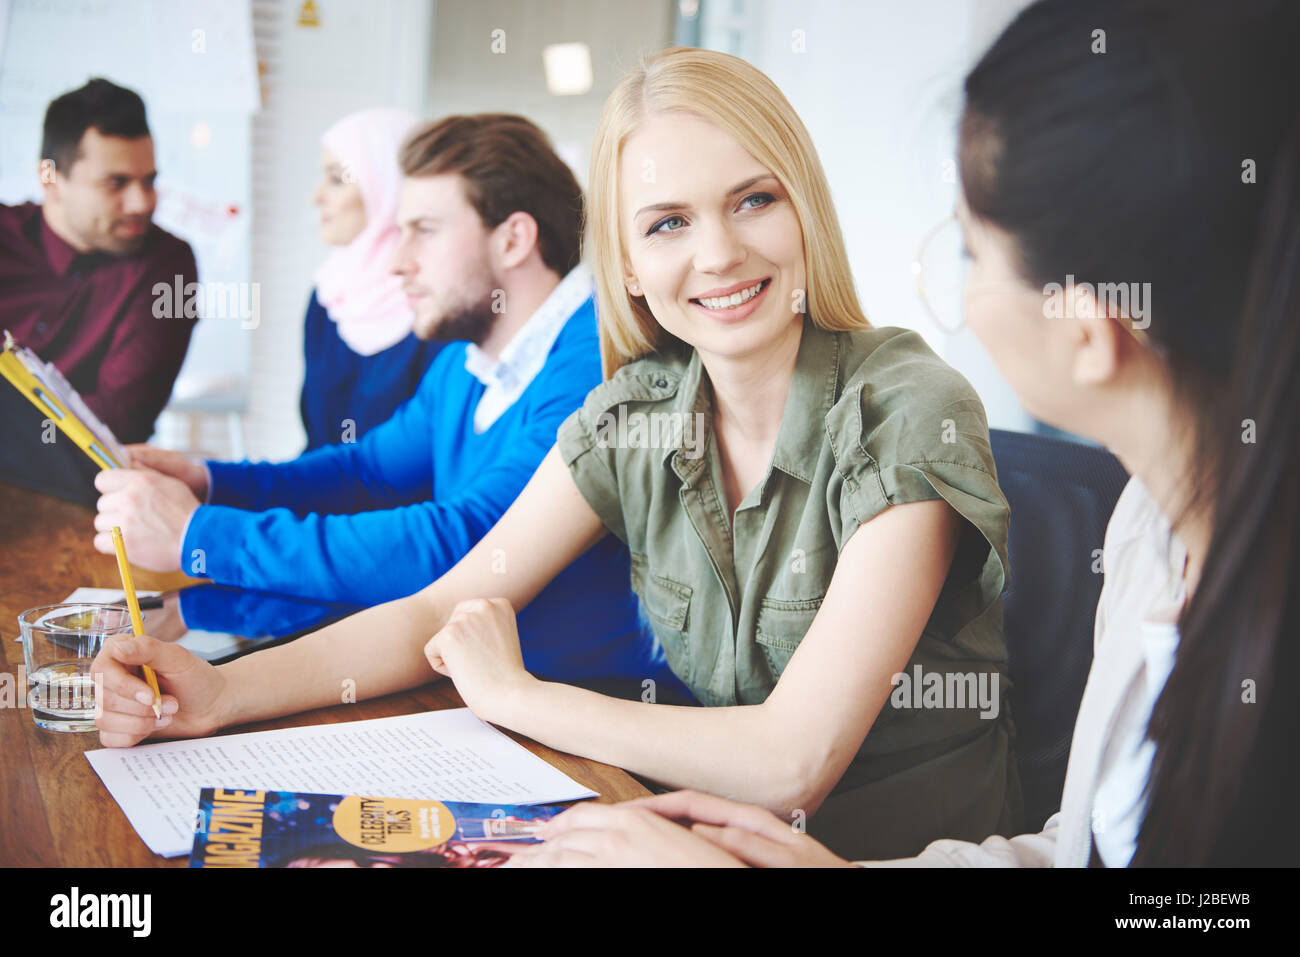 Female colleagues talking over business meeting - Stock Image